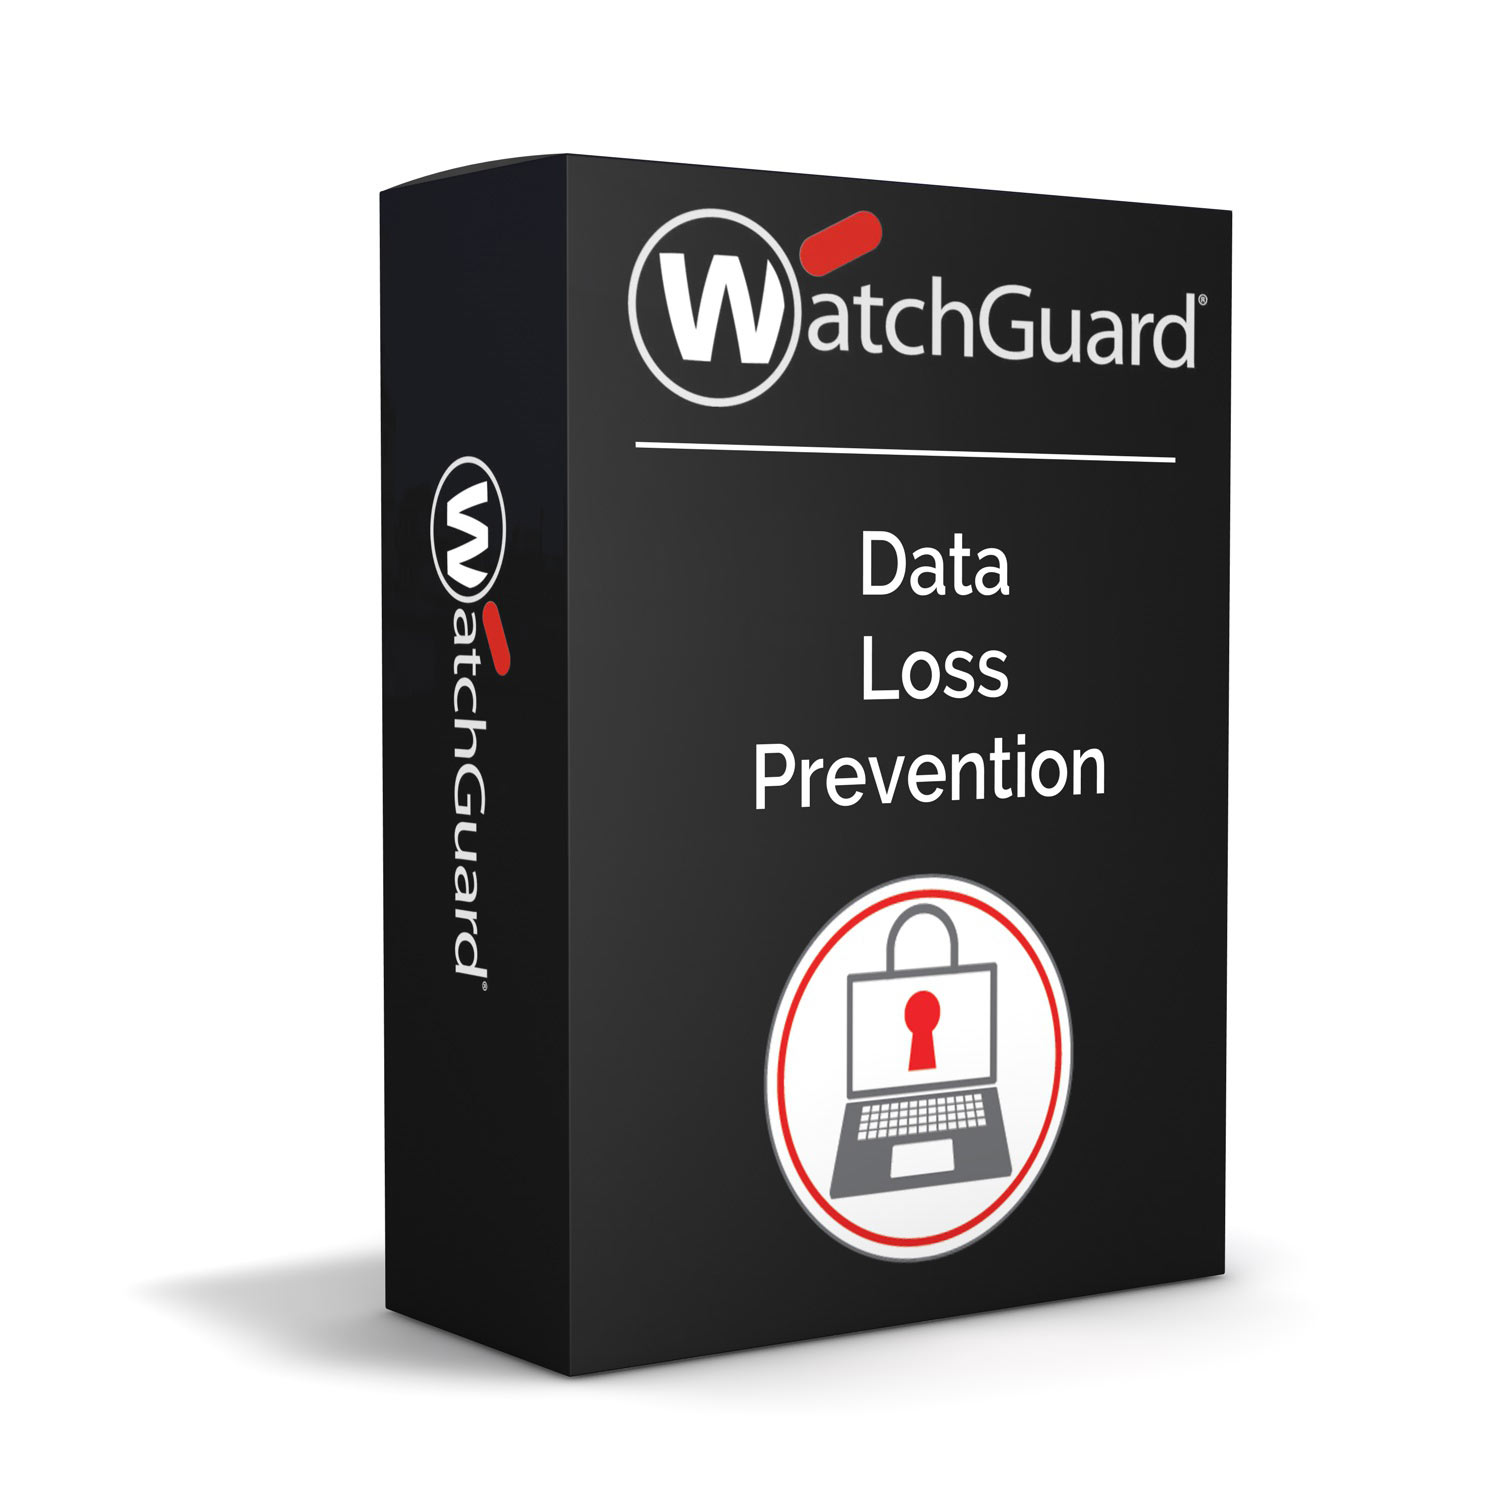 WatchGuard Data Loss Prevention 3-yr for FireboxV Large